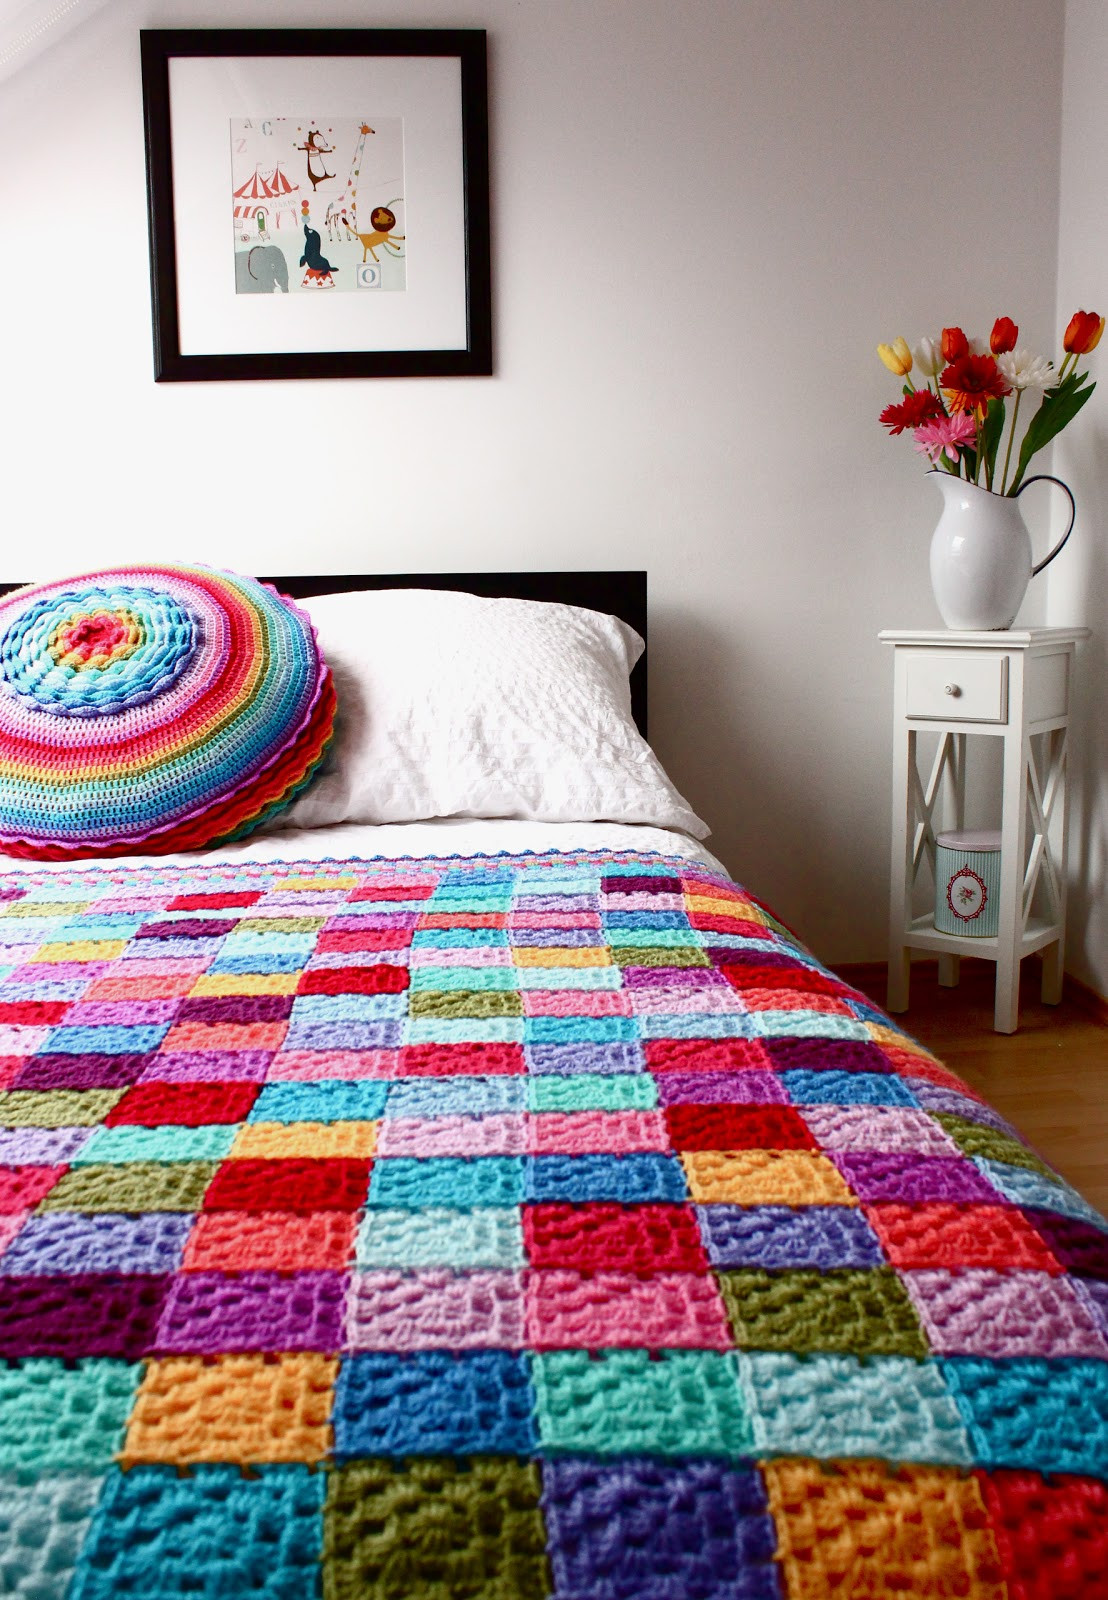 Crochet Quilts Elegant According to Matt solid Granny Square Blanket Of Unique 45 Pics Crochet Quilts